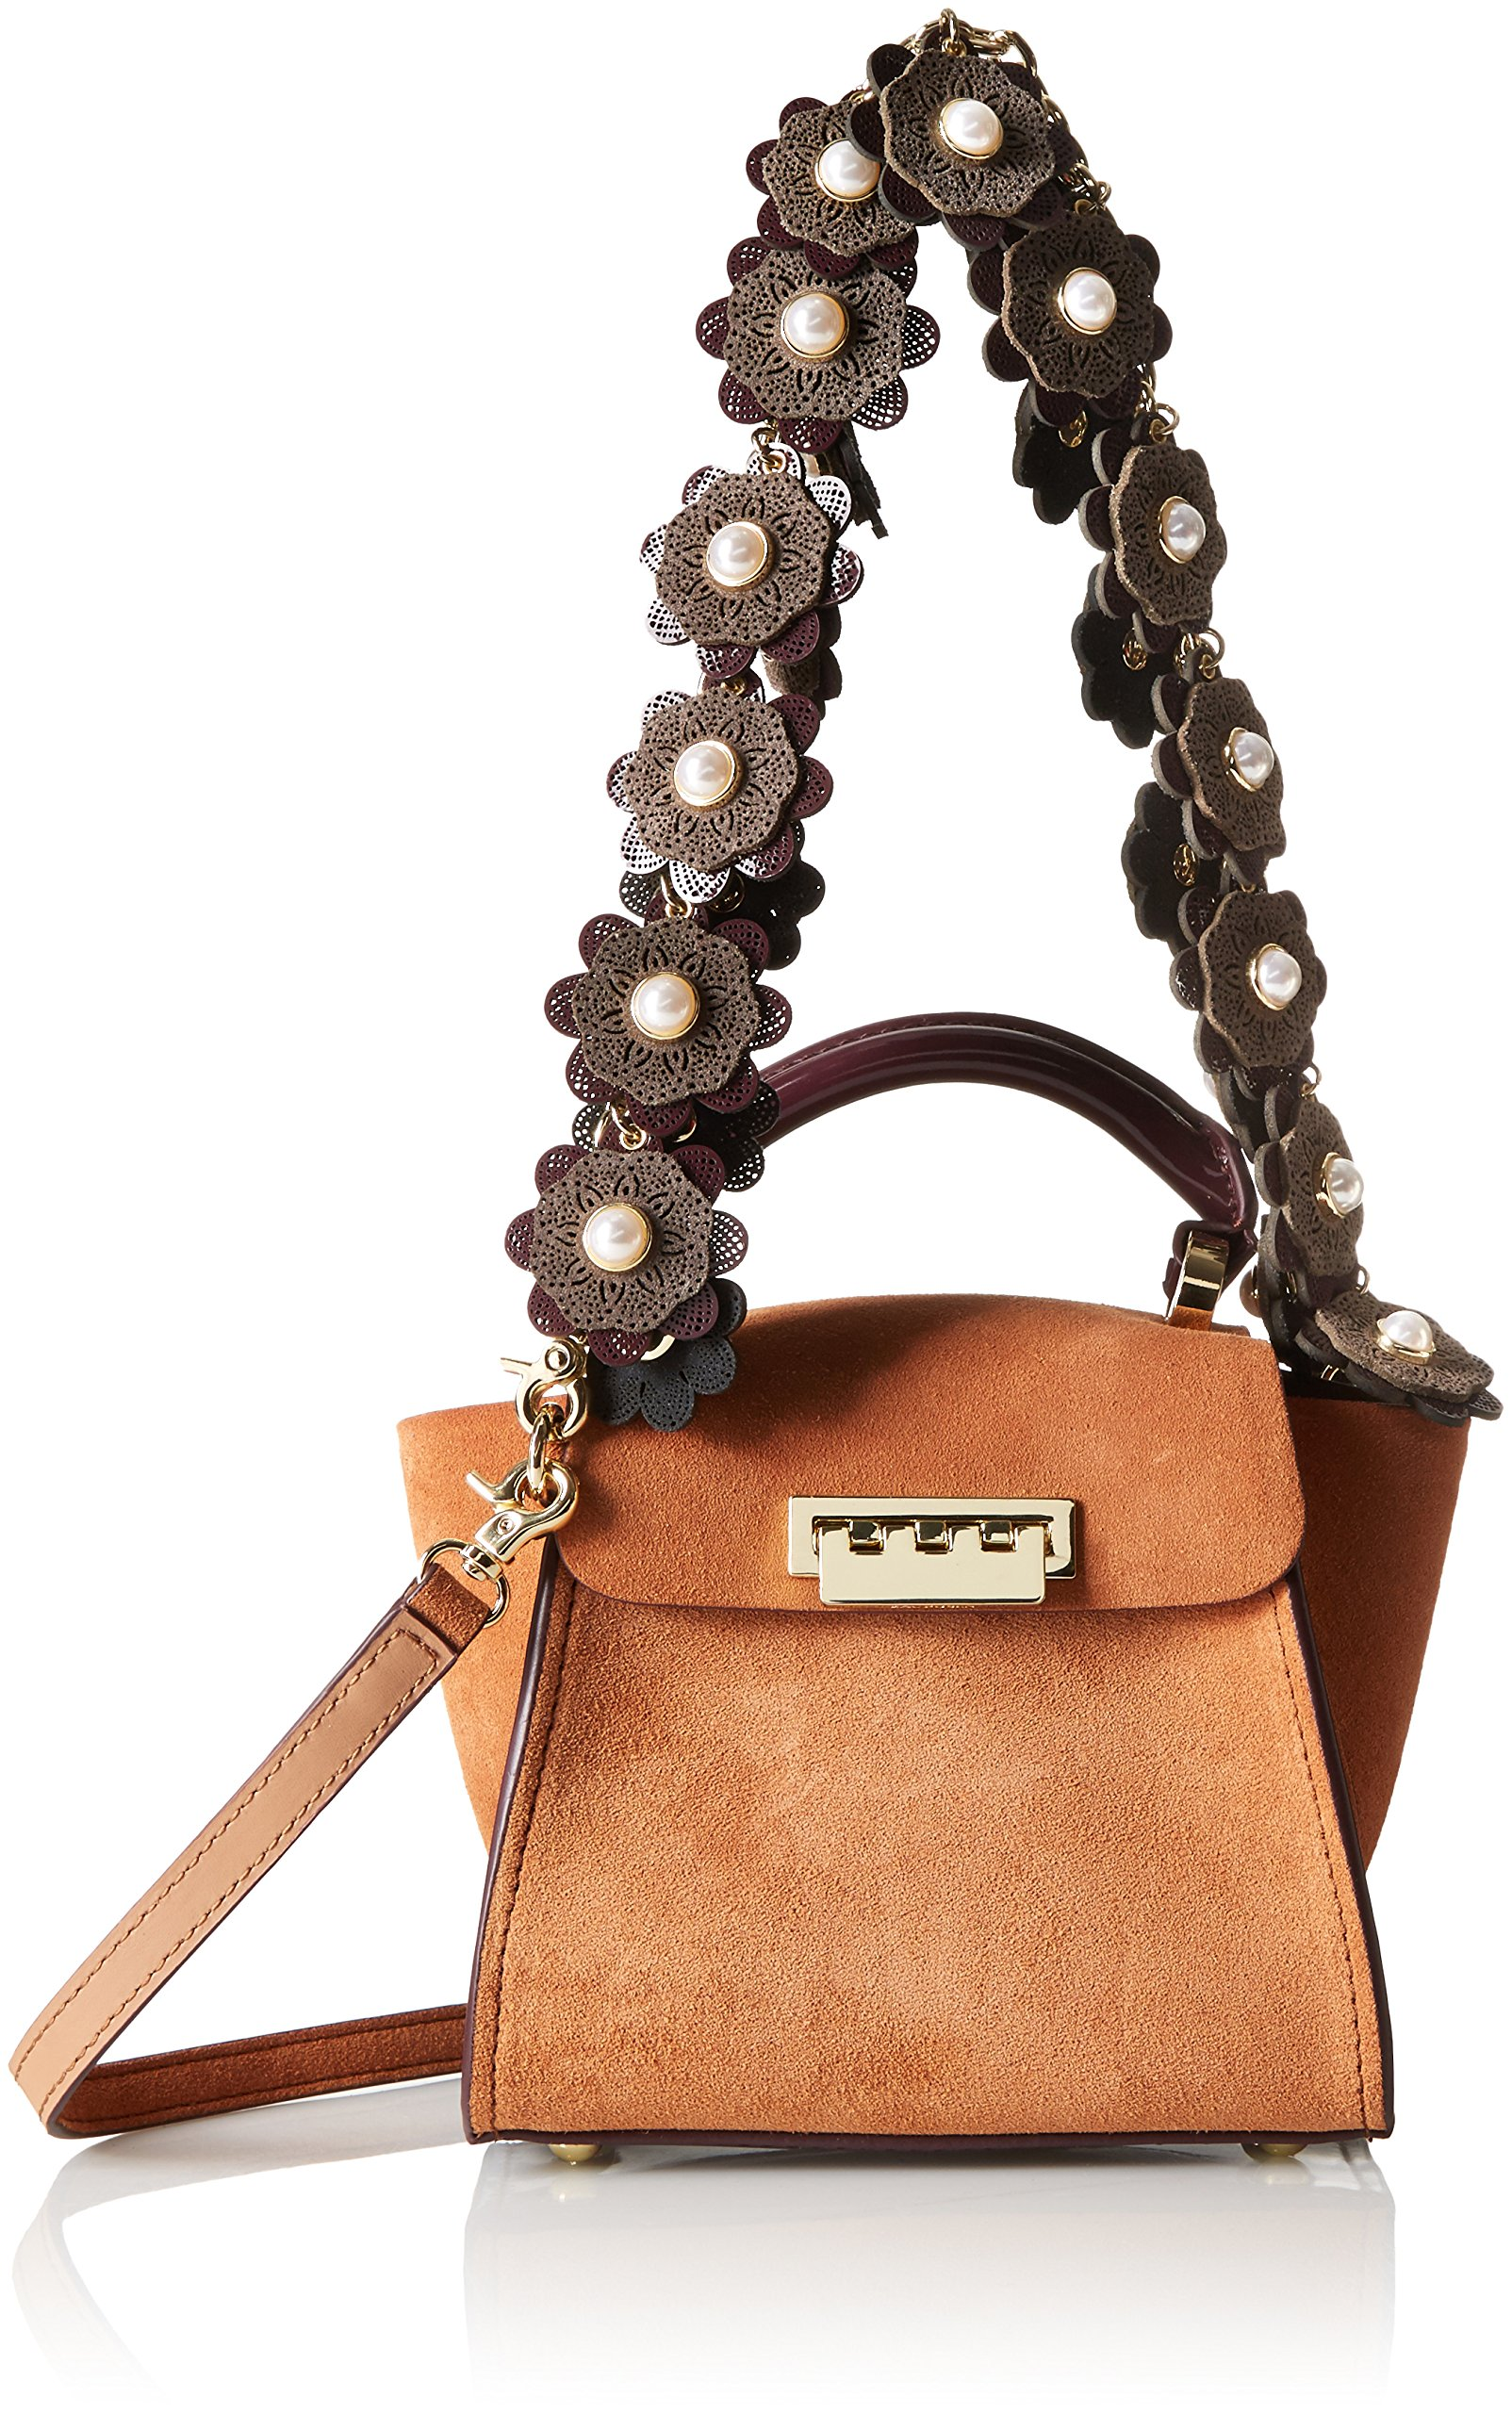 ZAC Zac Posen Eartha Iconic Top Handle Mini-Suede Colorblock W/ Baglace by ZAC Zac Posen (Image #1)